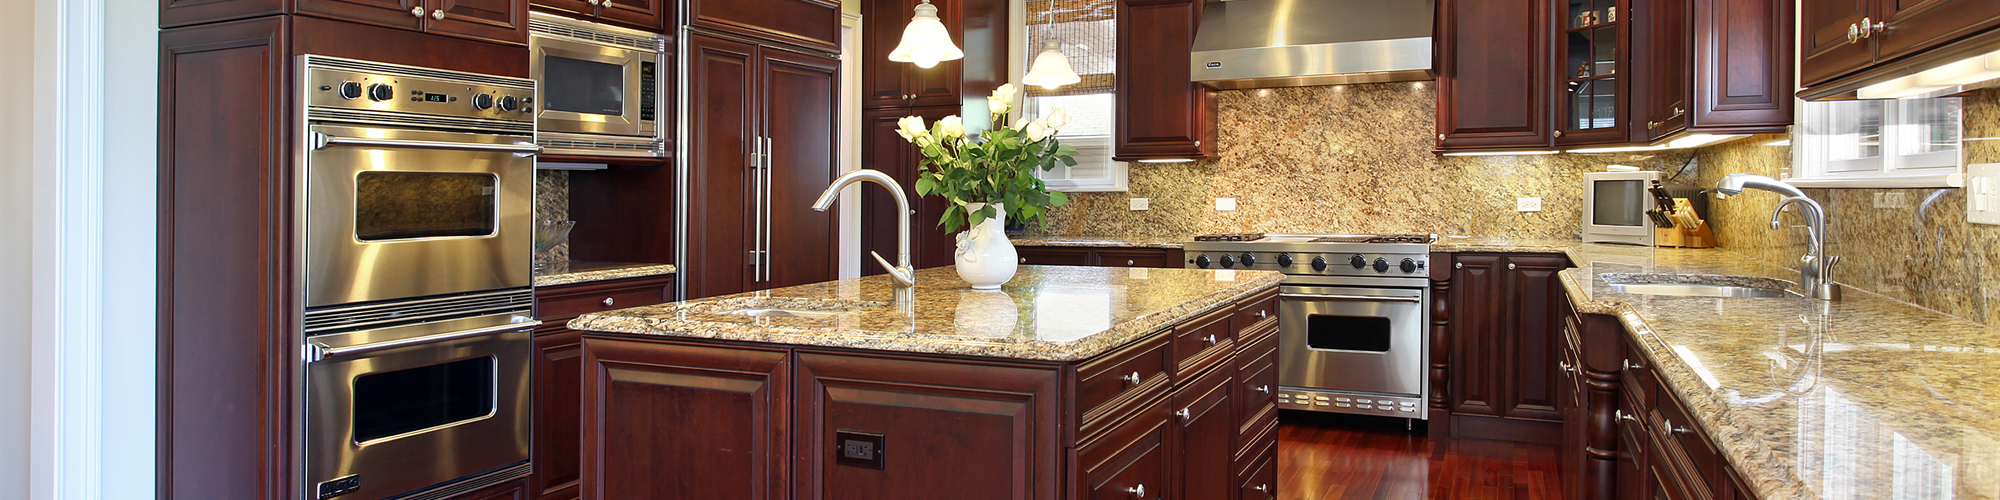 prefab kitchen cabinets all wood cabinetry vanity cabinets cabinetry world - Prefab Cabinets